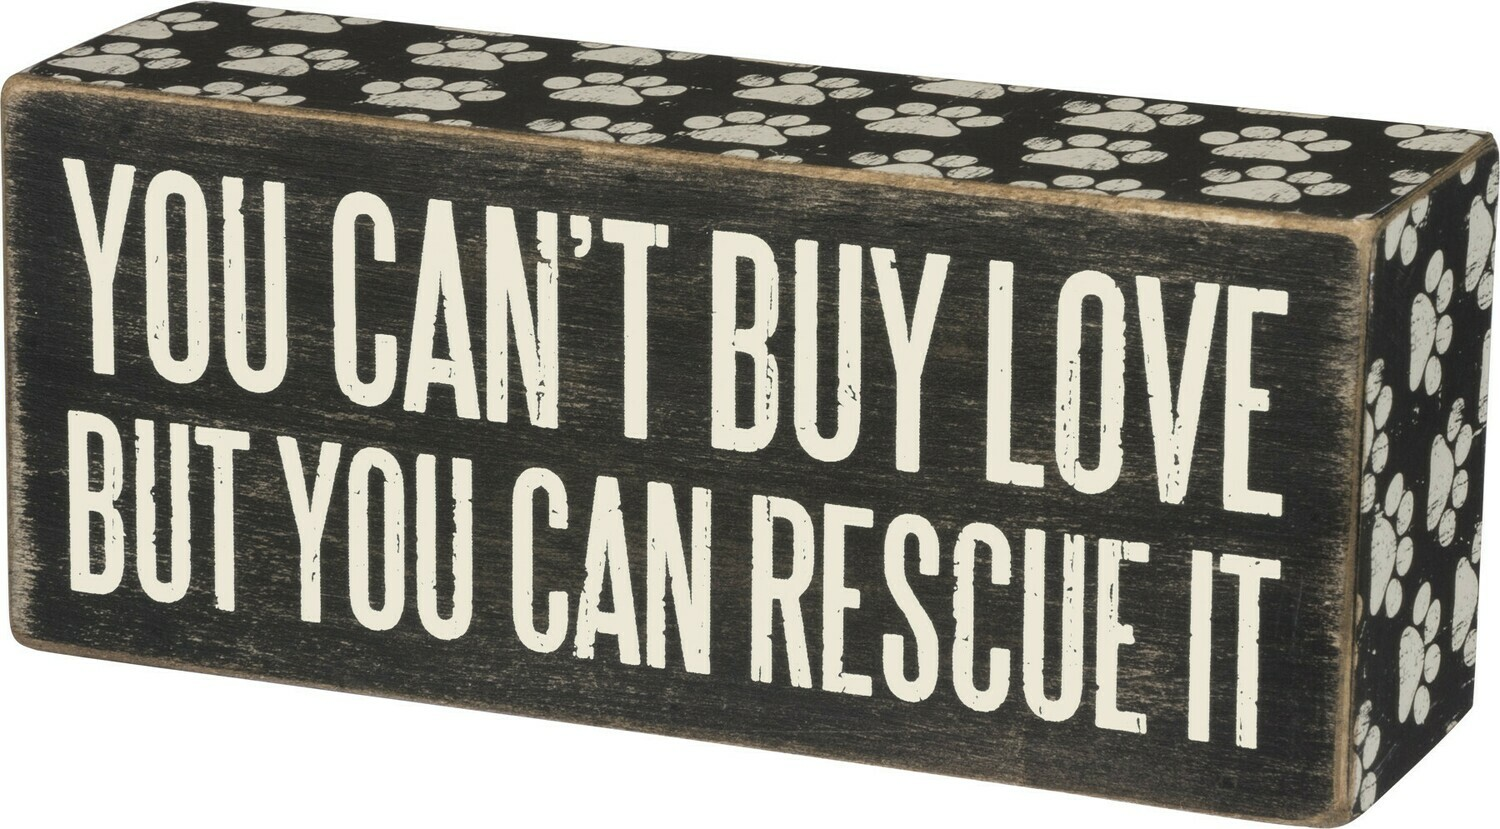 Box Sign; Can't buy love but you can rescue it